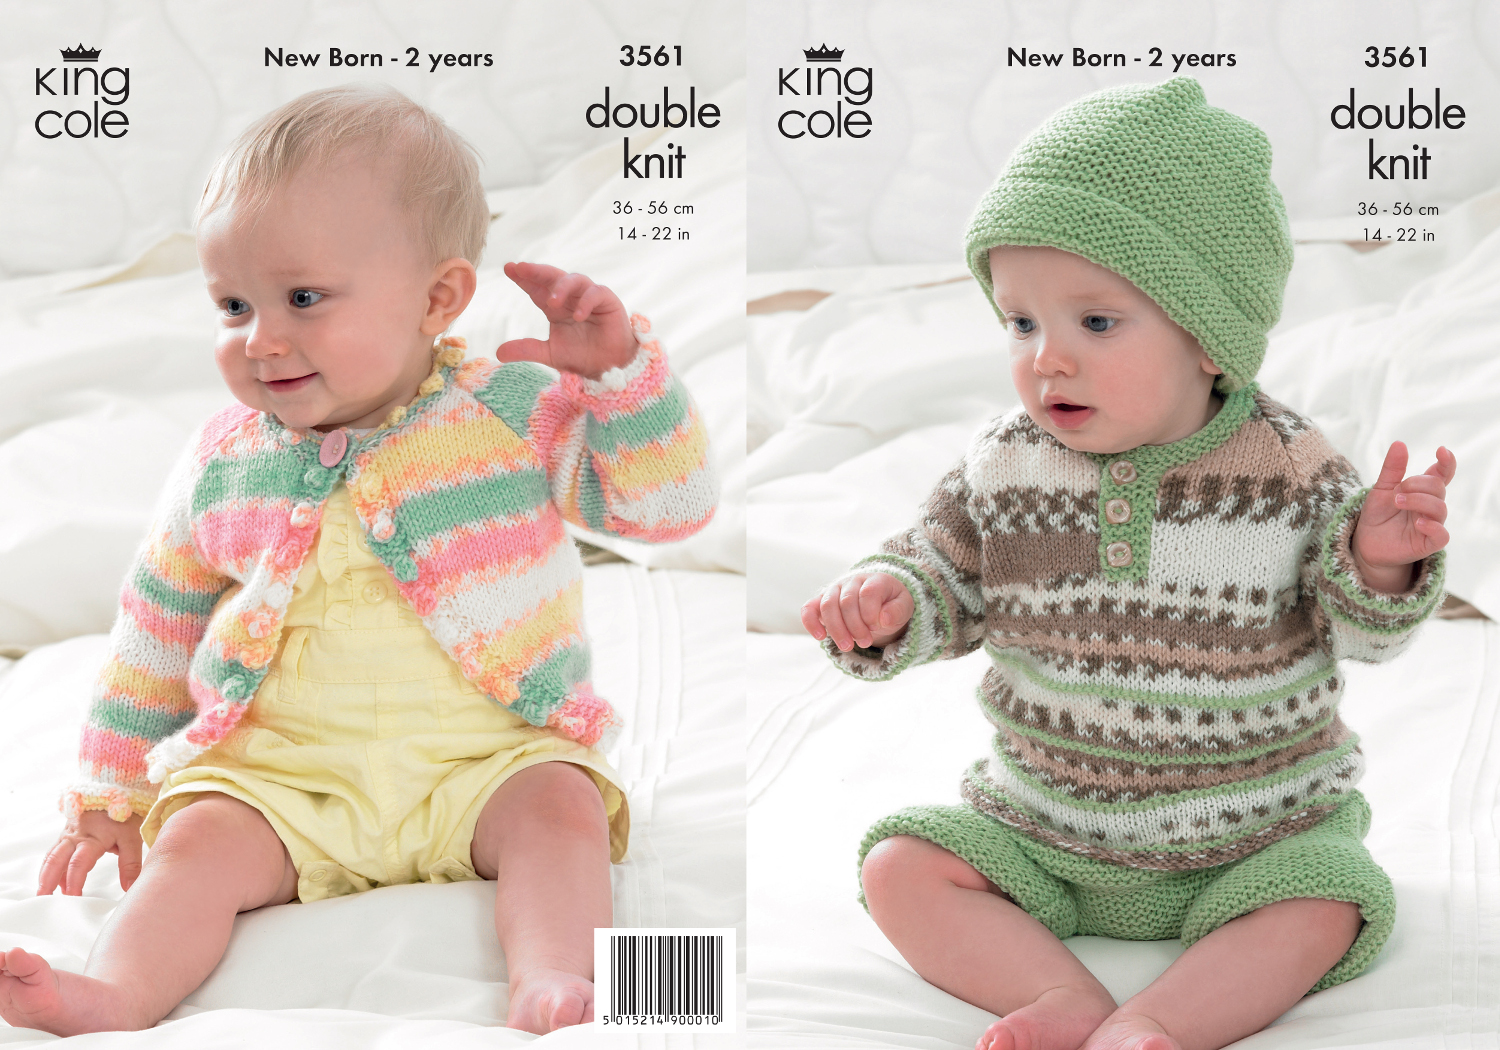 King cole baby double knitting pattern striped cardigan sweater king cole baby double knitting pattern striped cardigan sweater shorts hat 3561 bankloansurffo Choice Image